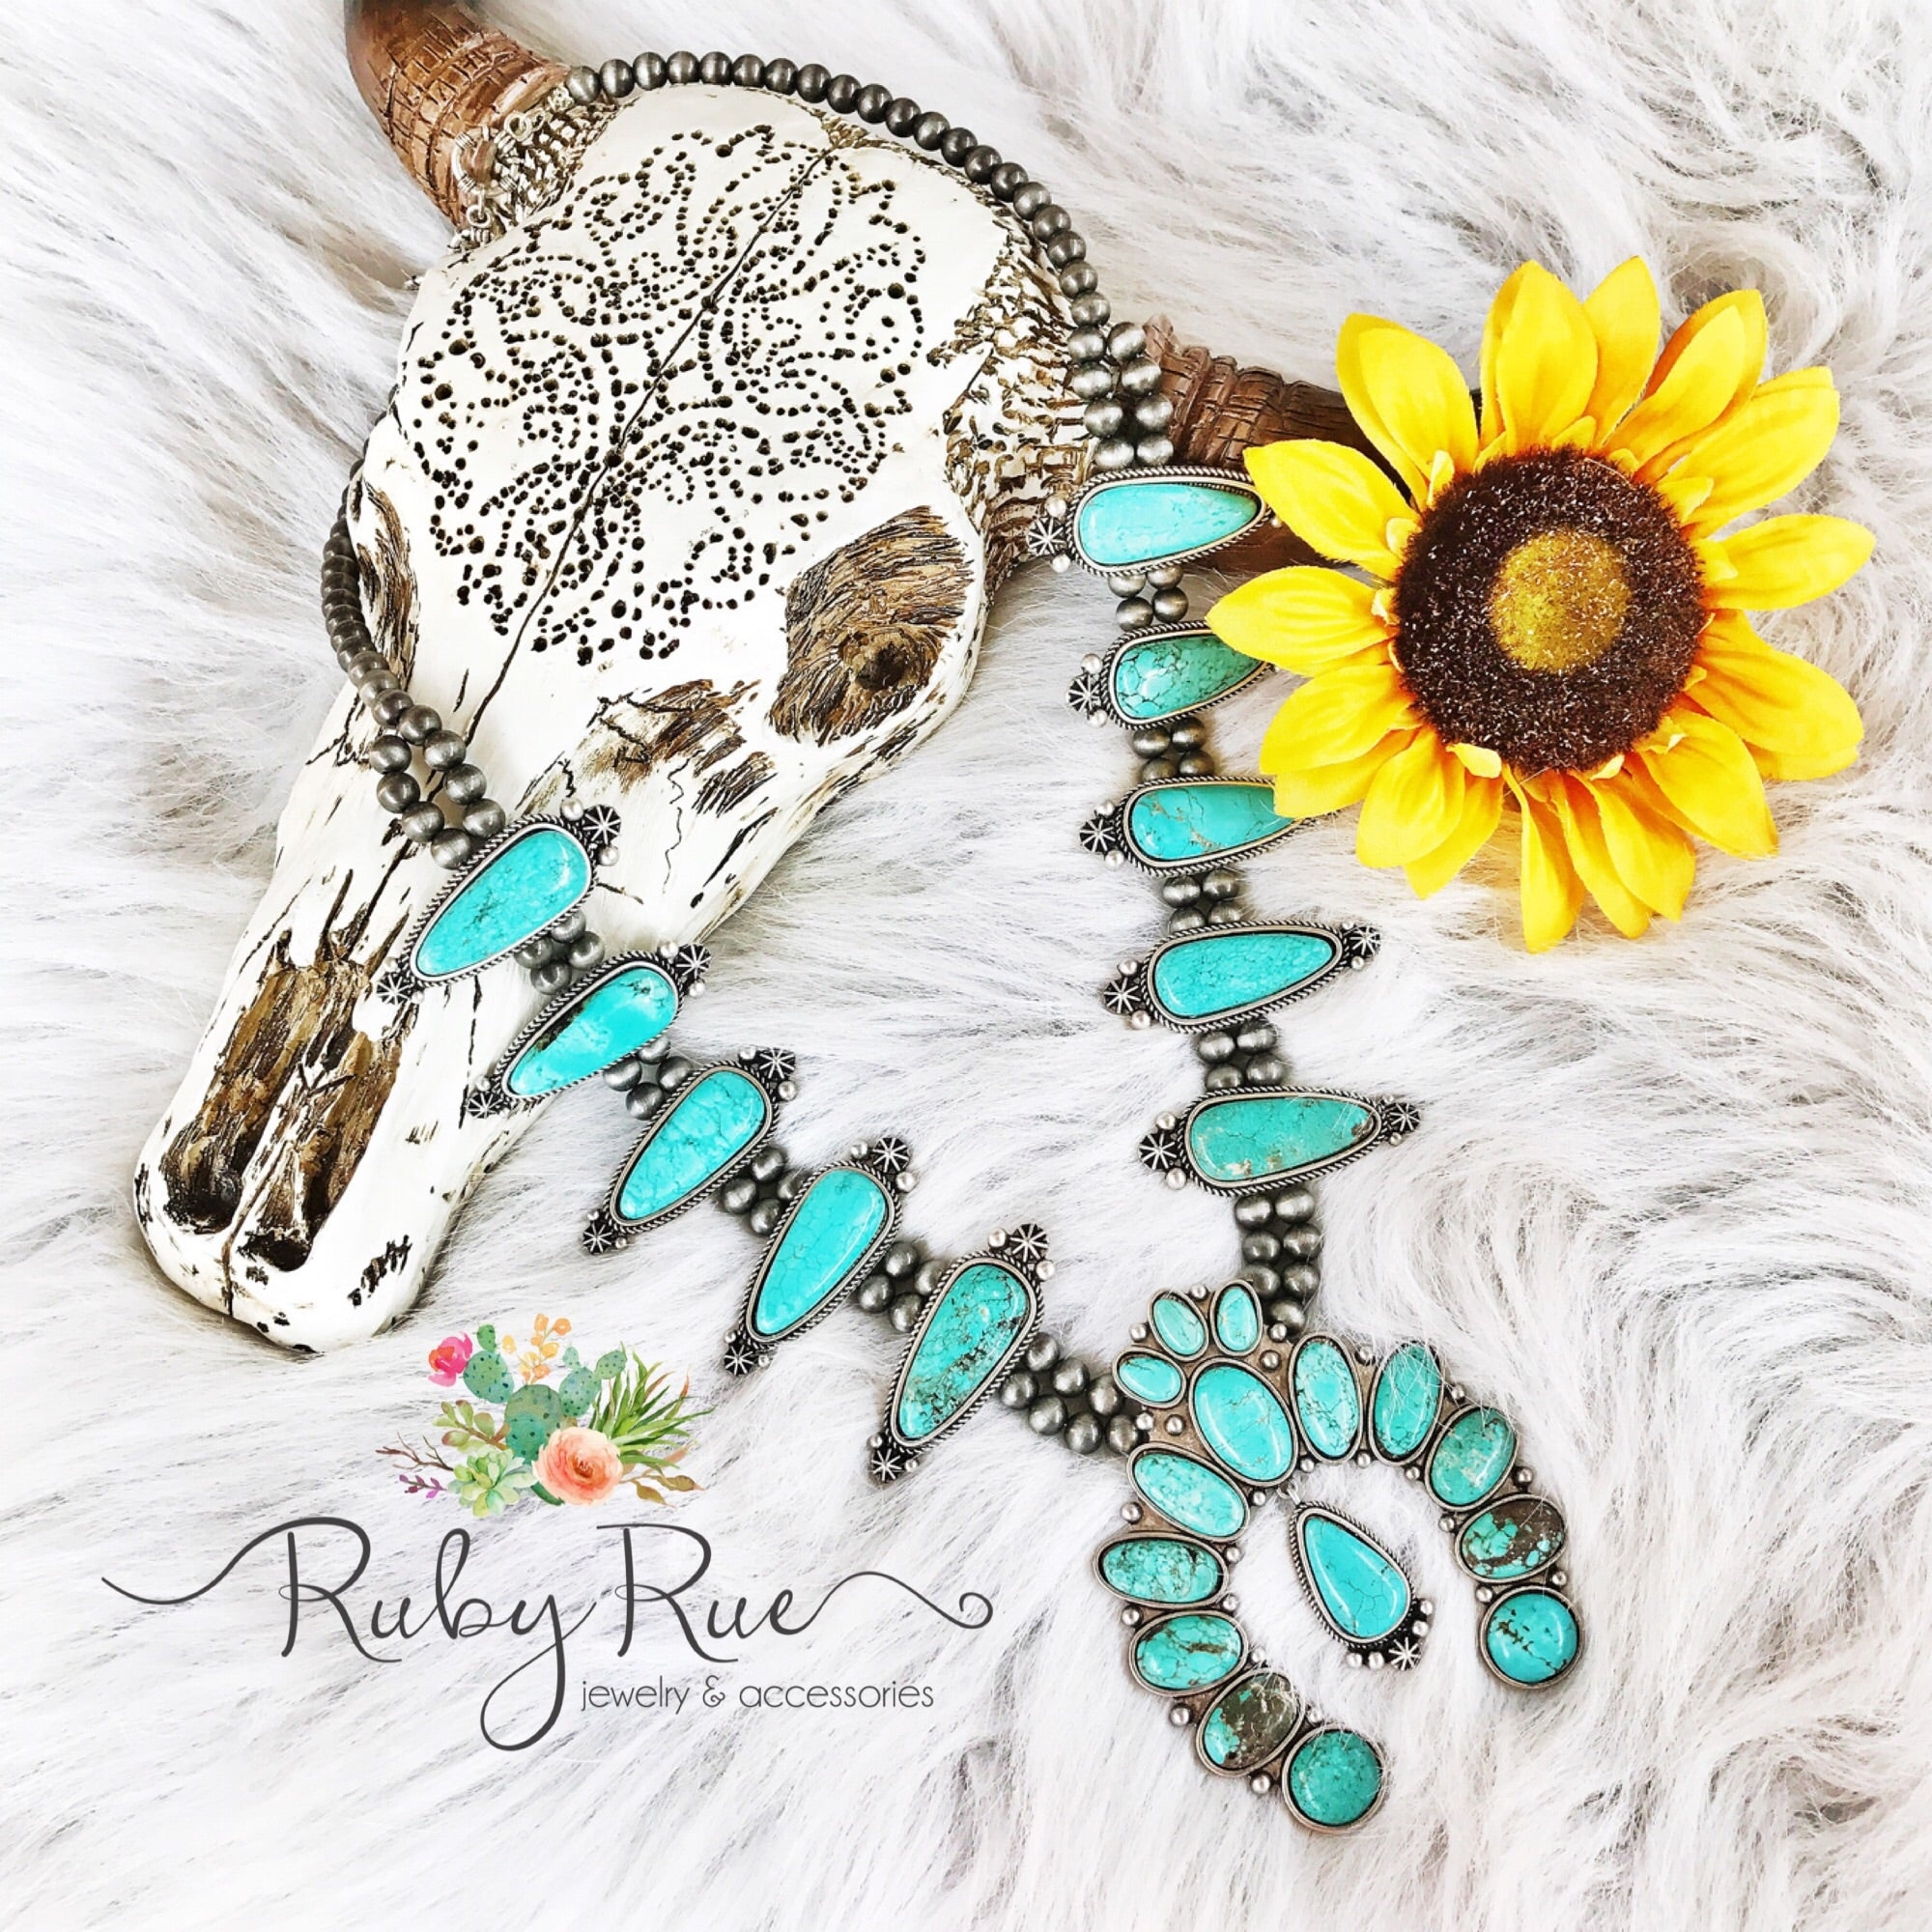 The Skylar Squash Necklace - Ruby Rue Jewelry & Accessories